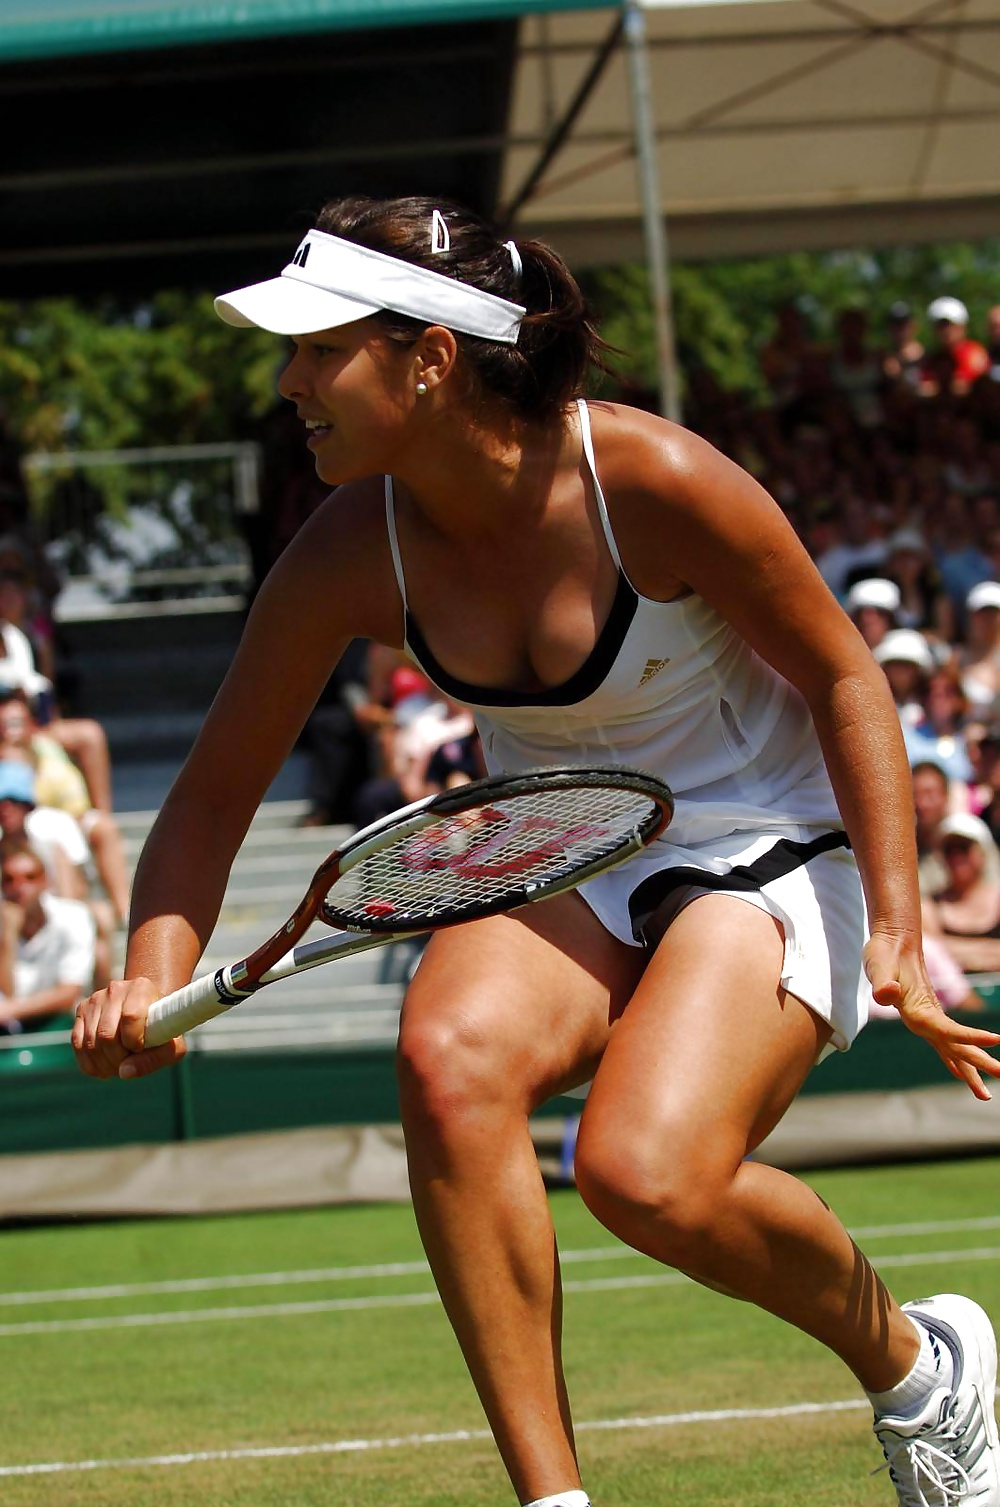 Ana ivanovic photos upskirt — photo 3